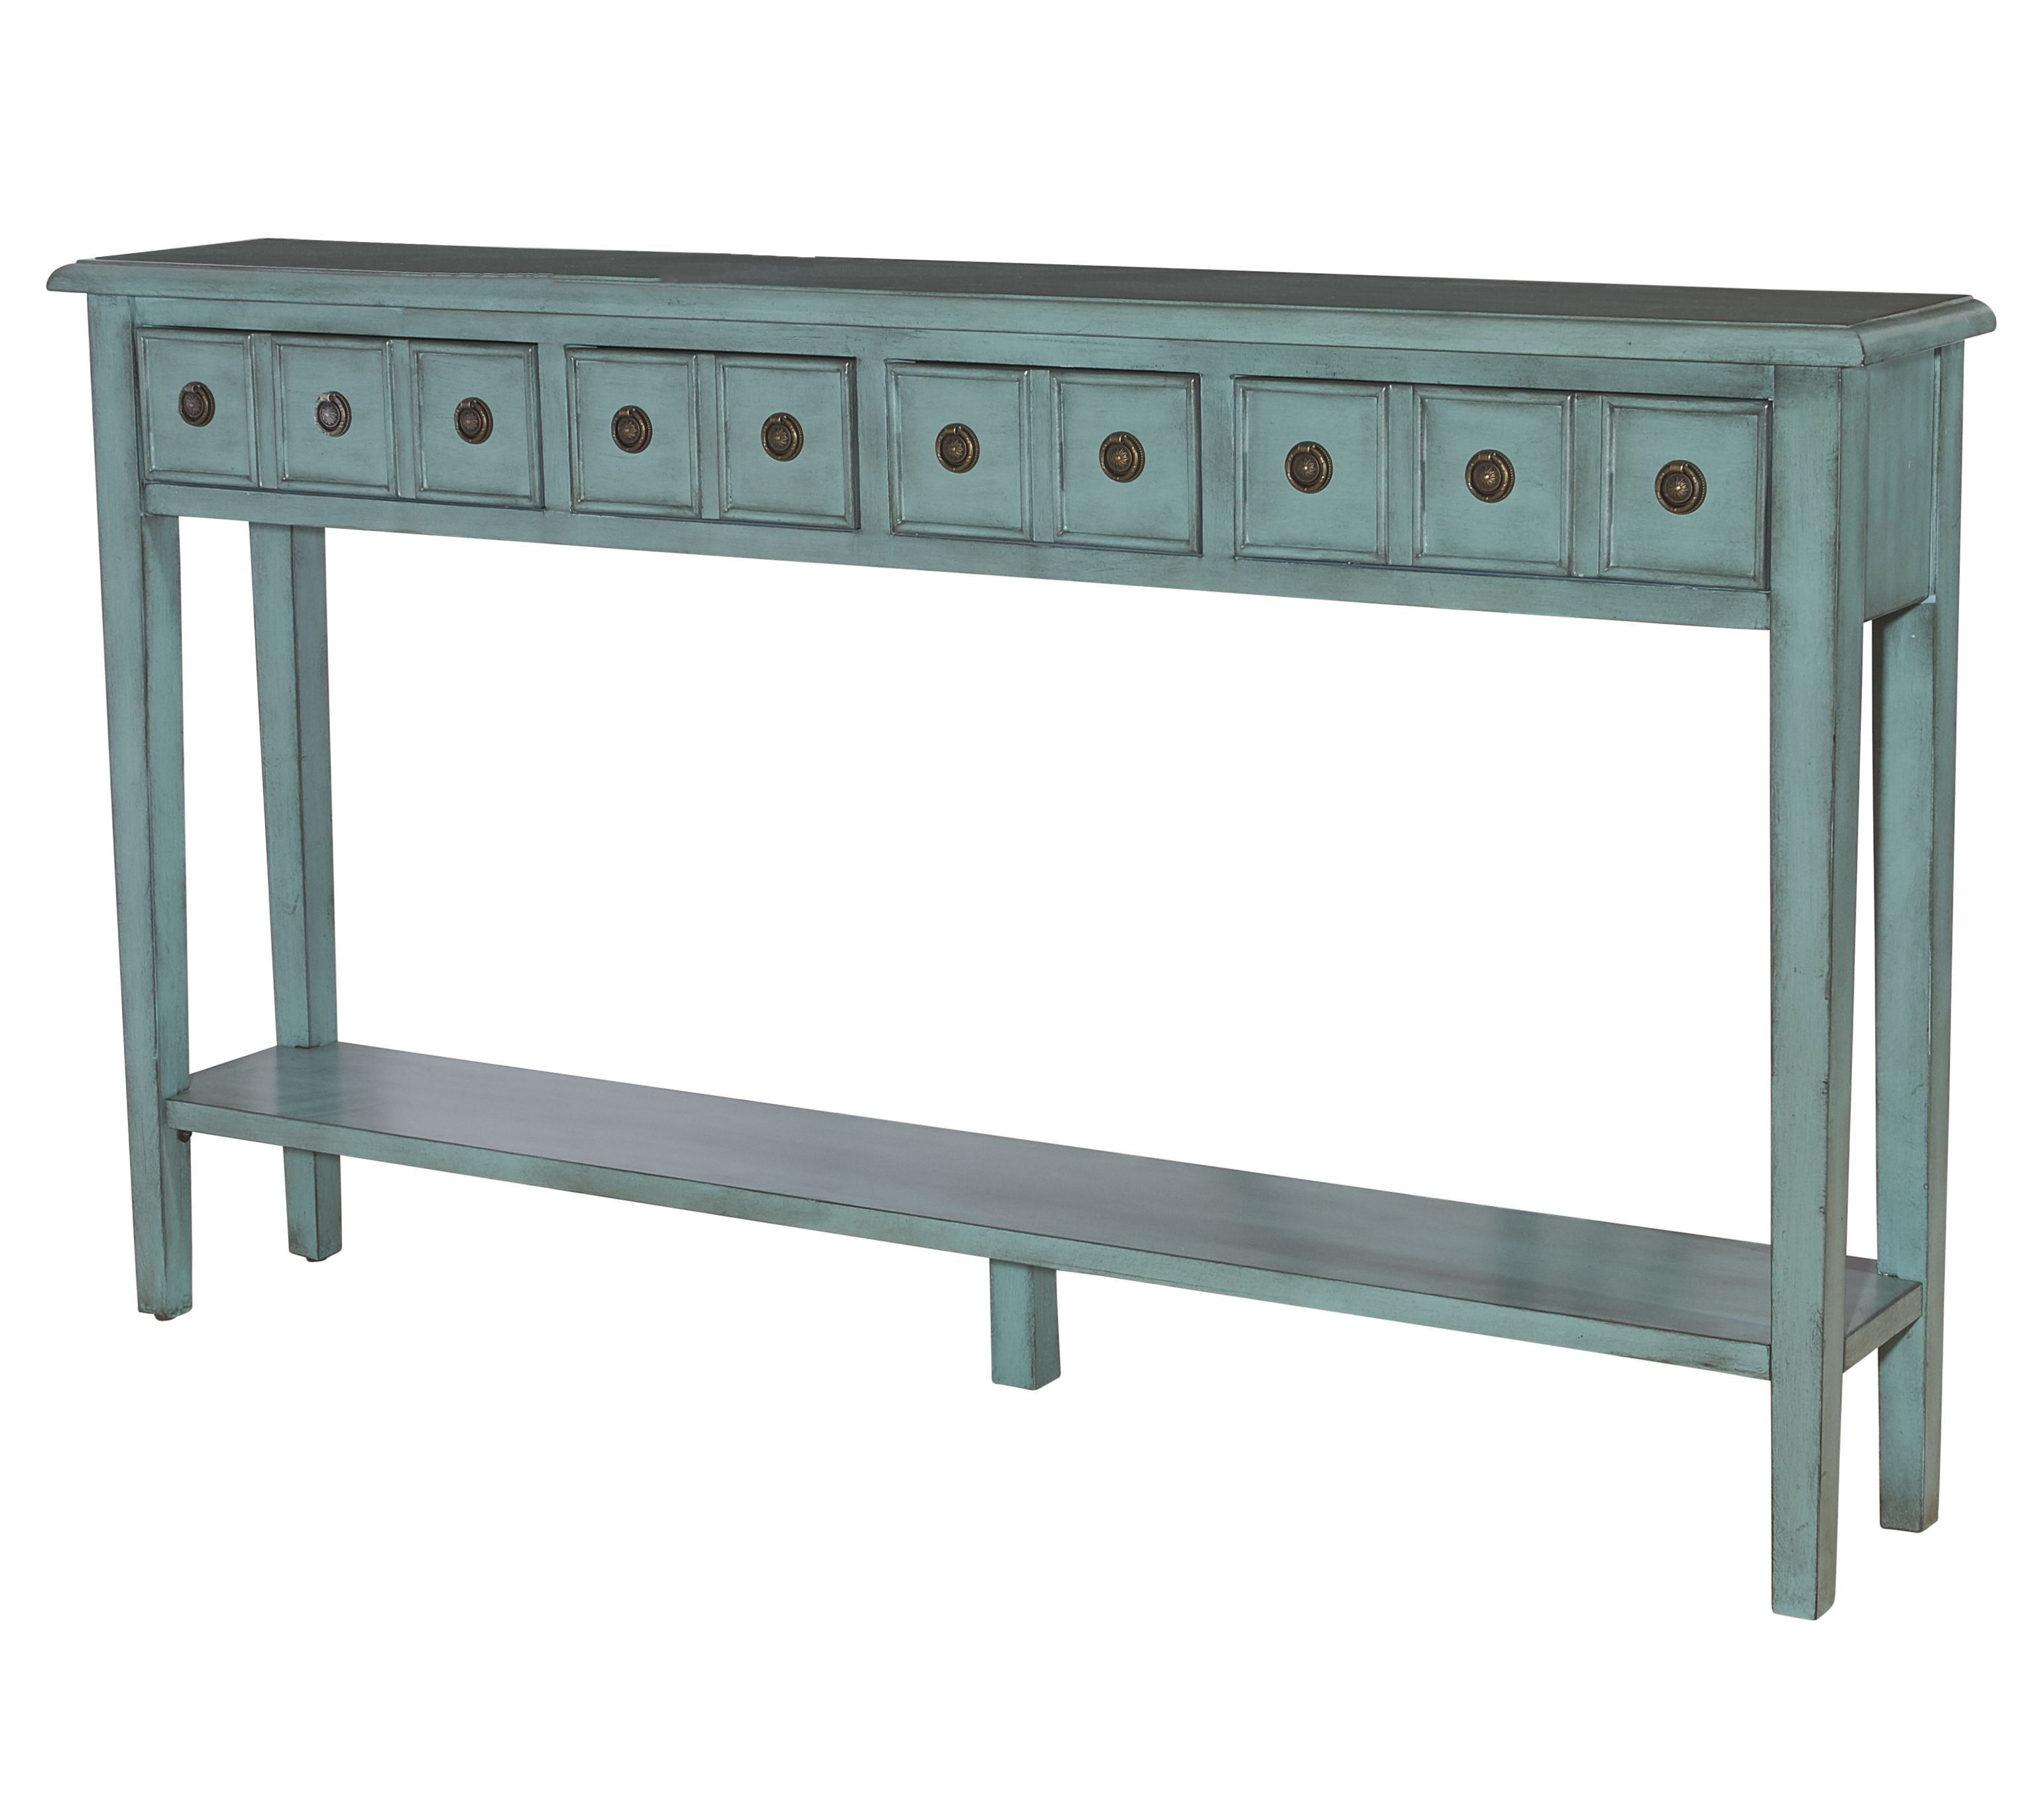 L Powell Sadie Teal Long Console Blue Entryway Console Table Console Table Entryway Console